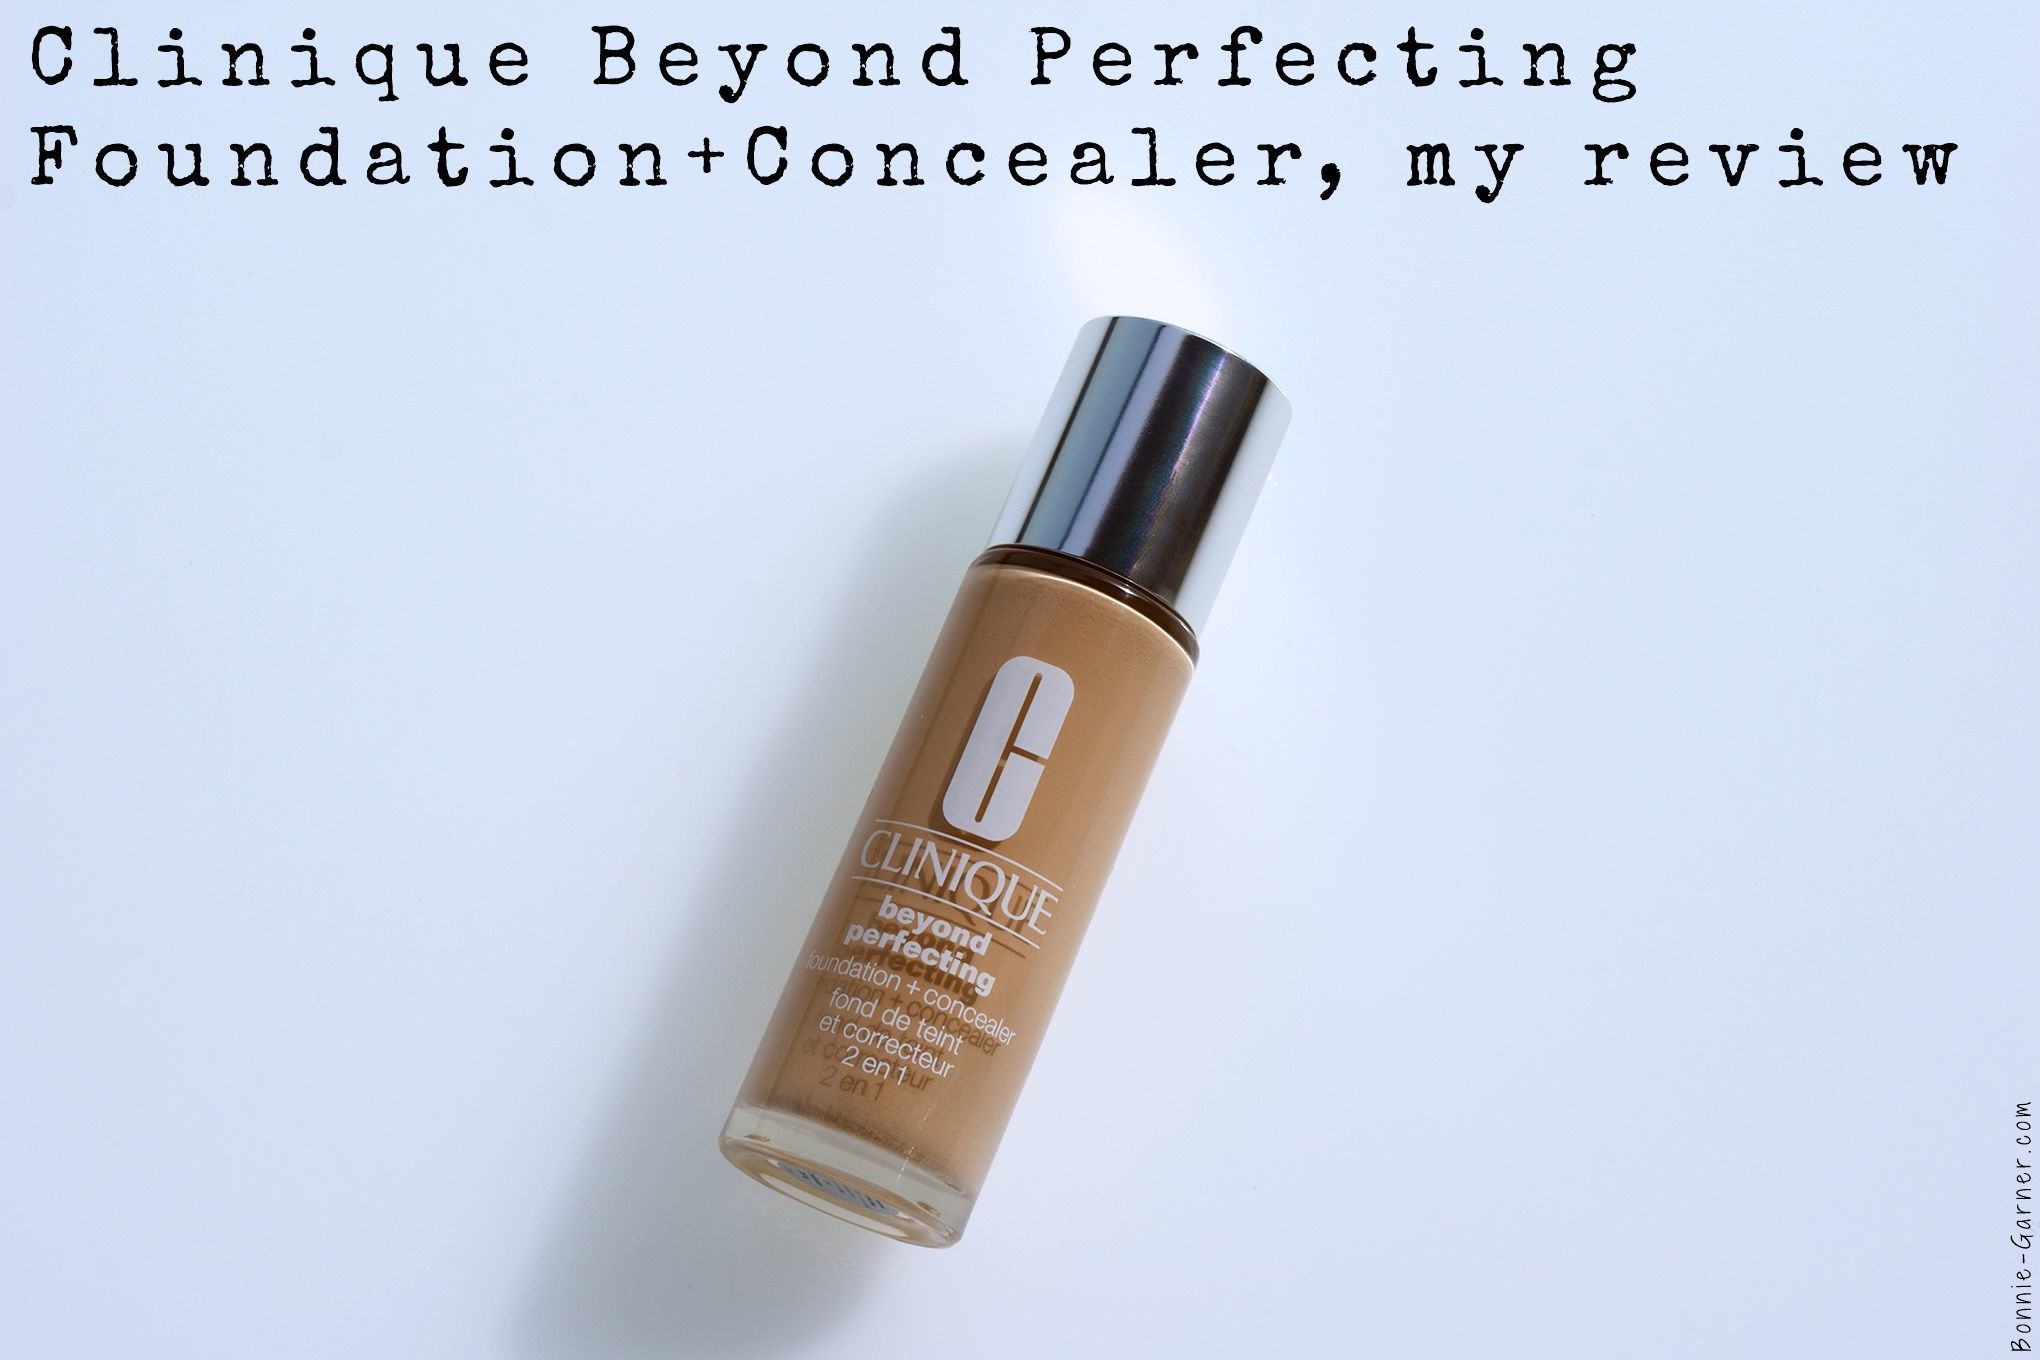 Clinique Beyond Perfecting Foundation Concealer my review